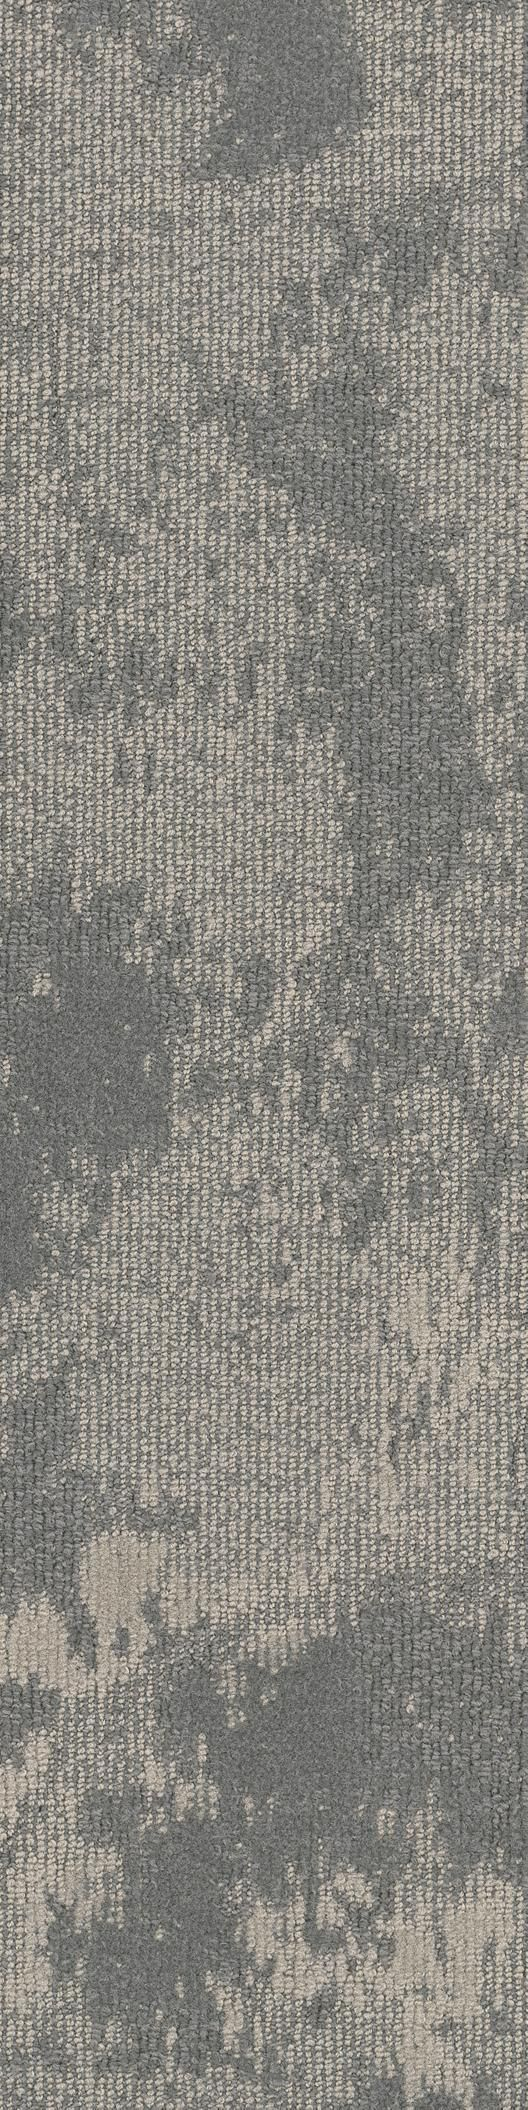 explore tile 5t143 shaw contract group commercial carpet and flooring